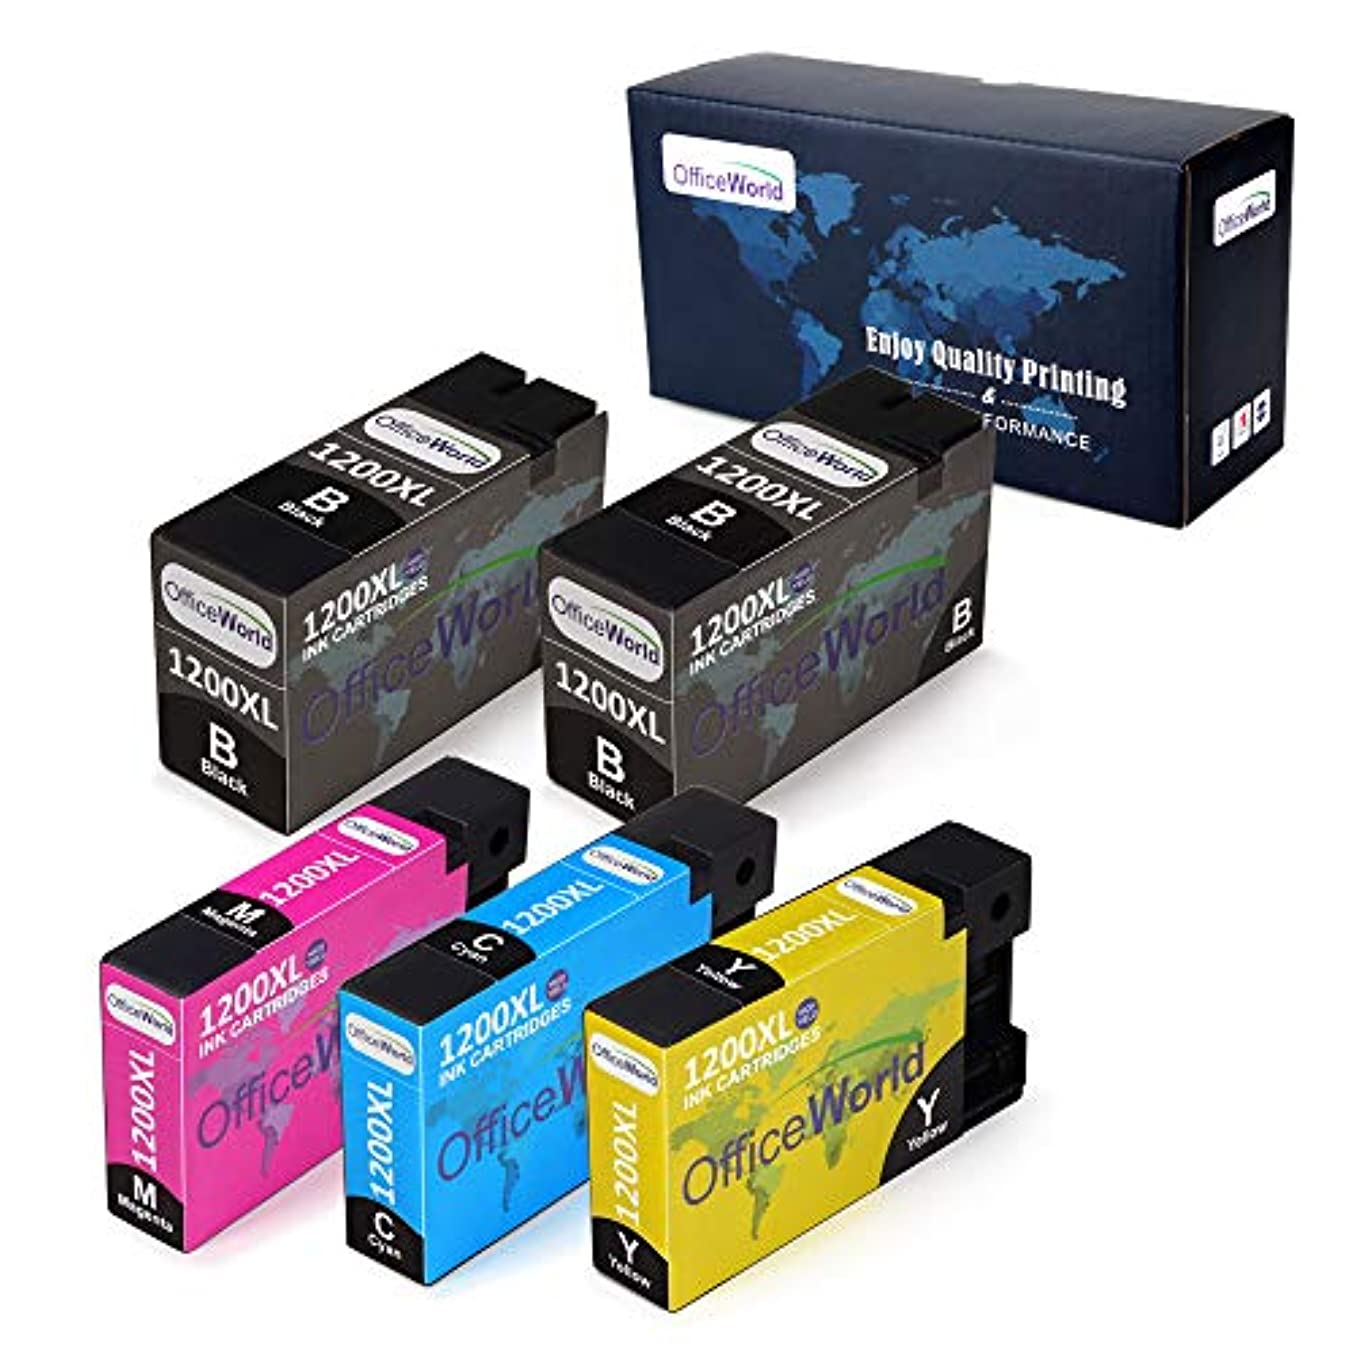 Office World Compatible Ink Cartridge Replacement for Canon PGI-1200XL PGI-1200 XL for Canon Maxify MB2320 MB2720 MB2020 MB2120 MB2350 MB2050 (2 Black, 1 Cyan, 1 Magenta, 1 Yellow, 5 Pack)